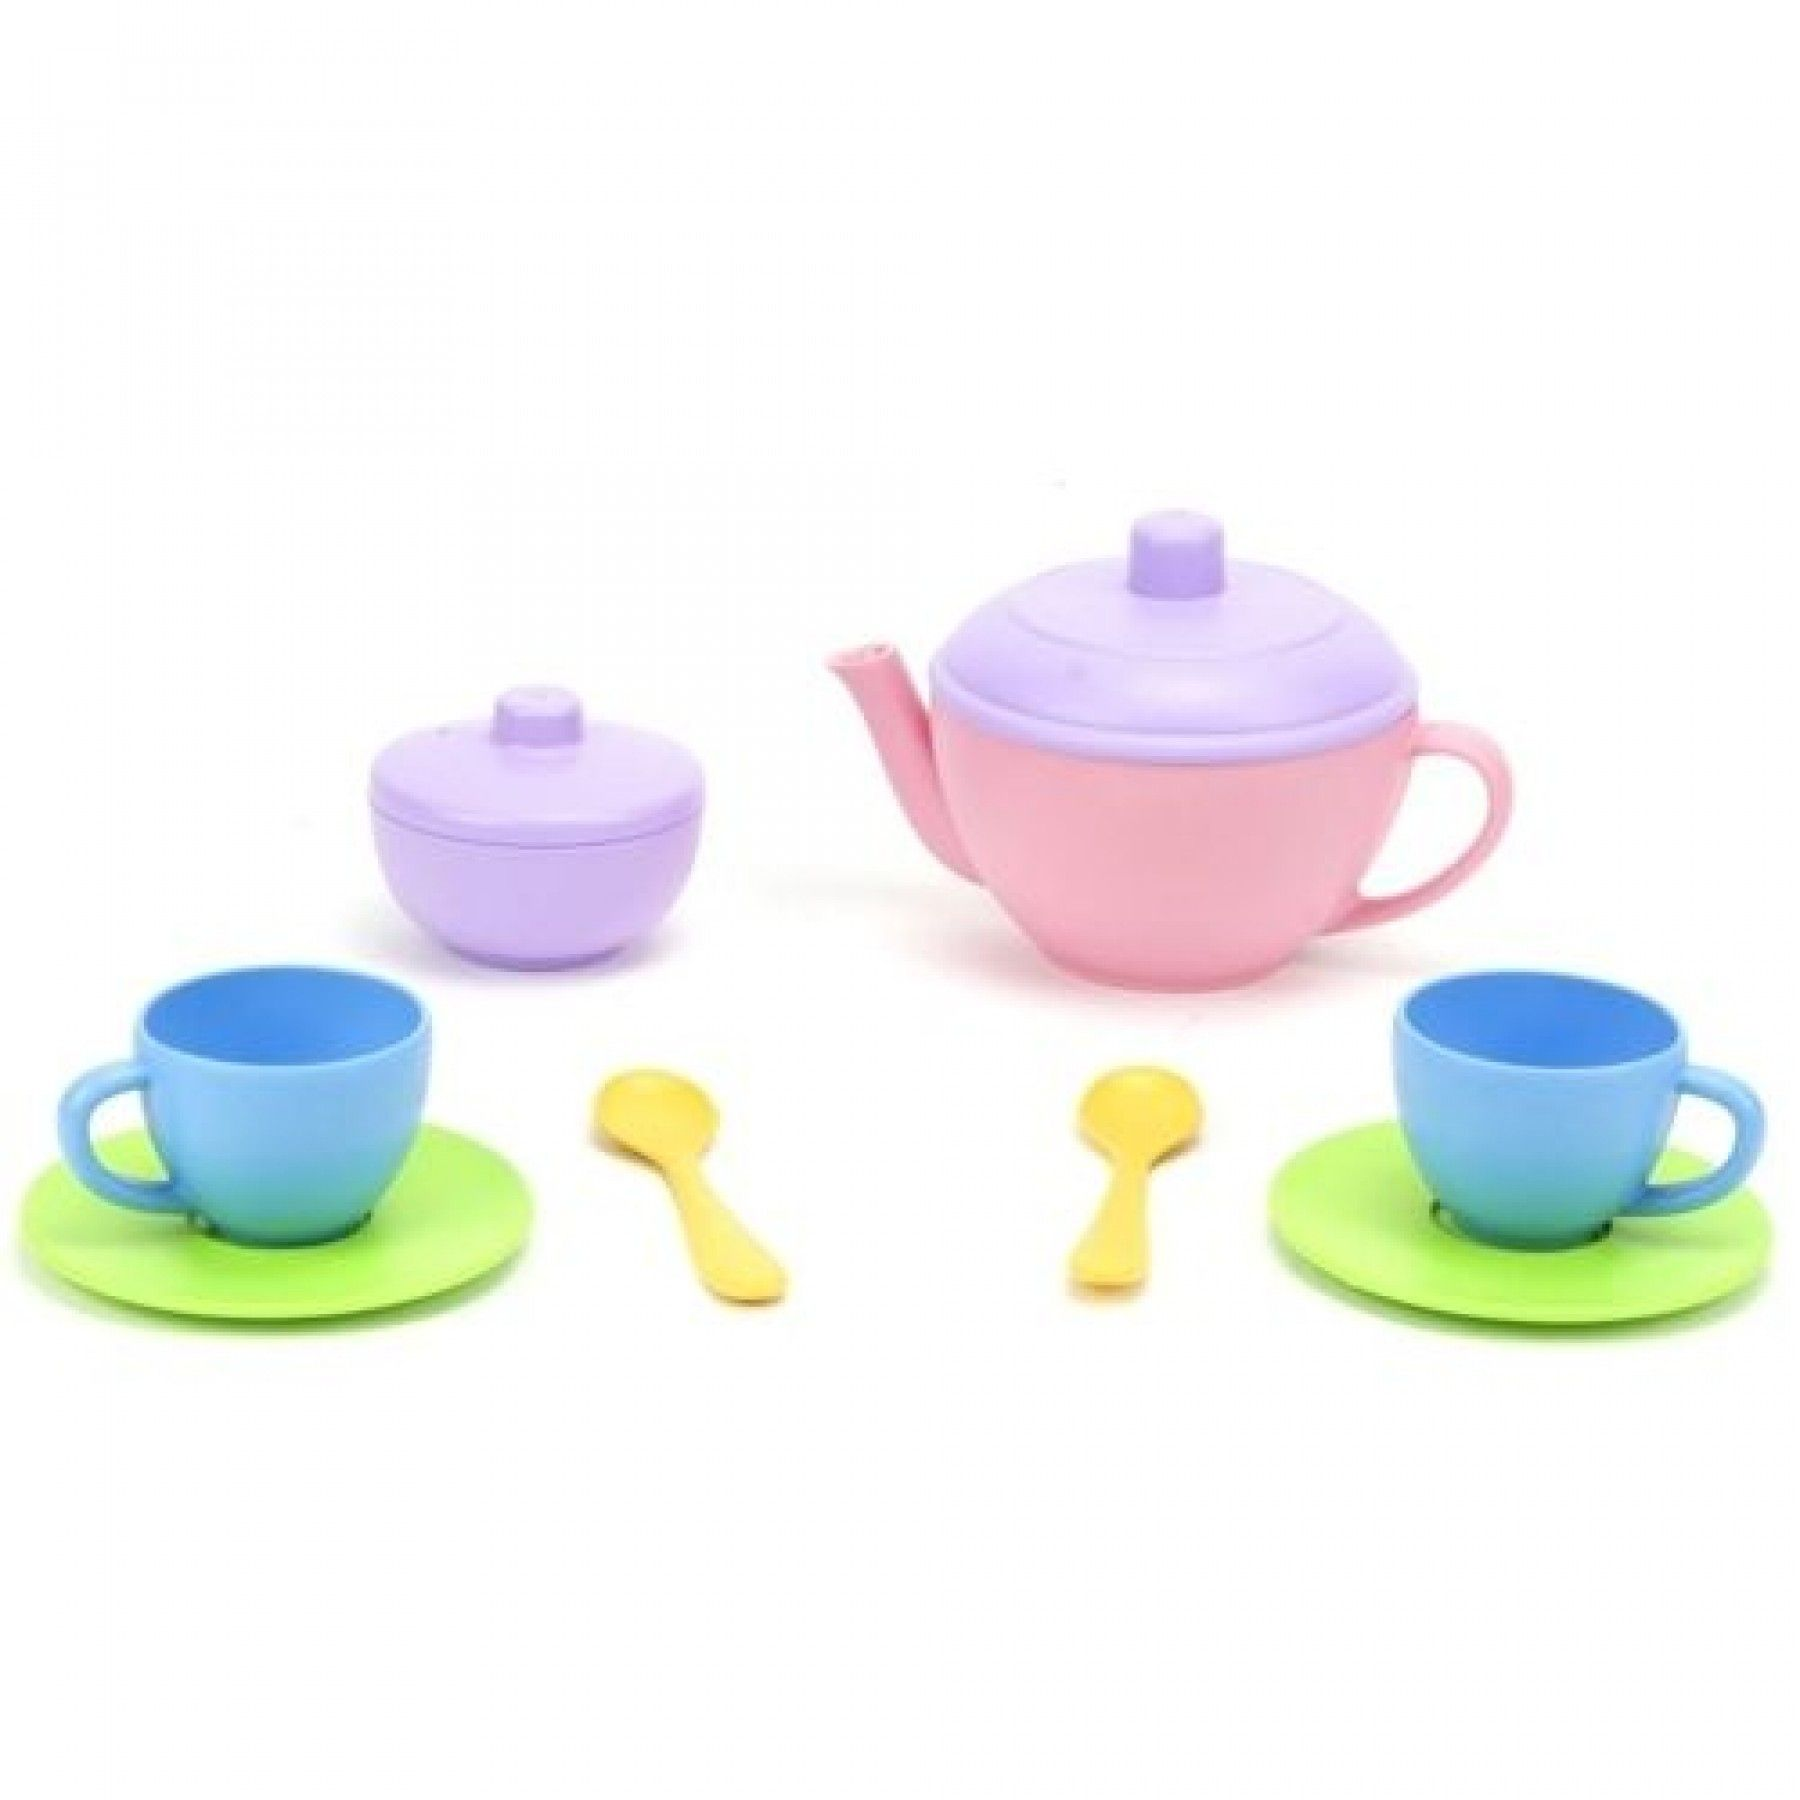 green toys theeservies blauw 10-delig - gerecycled   ilovespeelgoed.nl